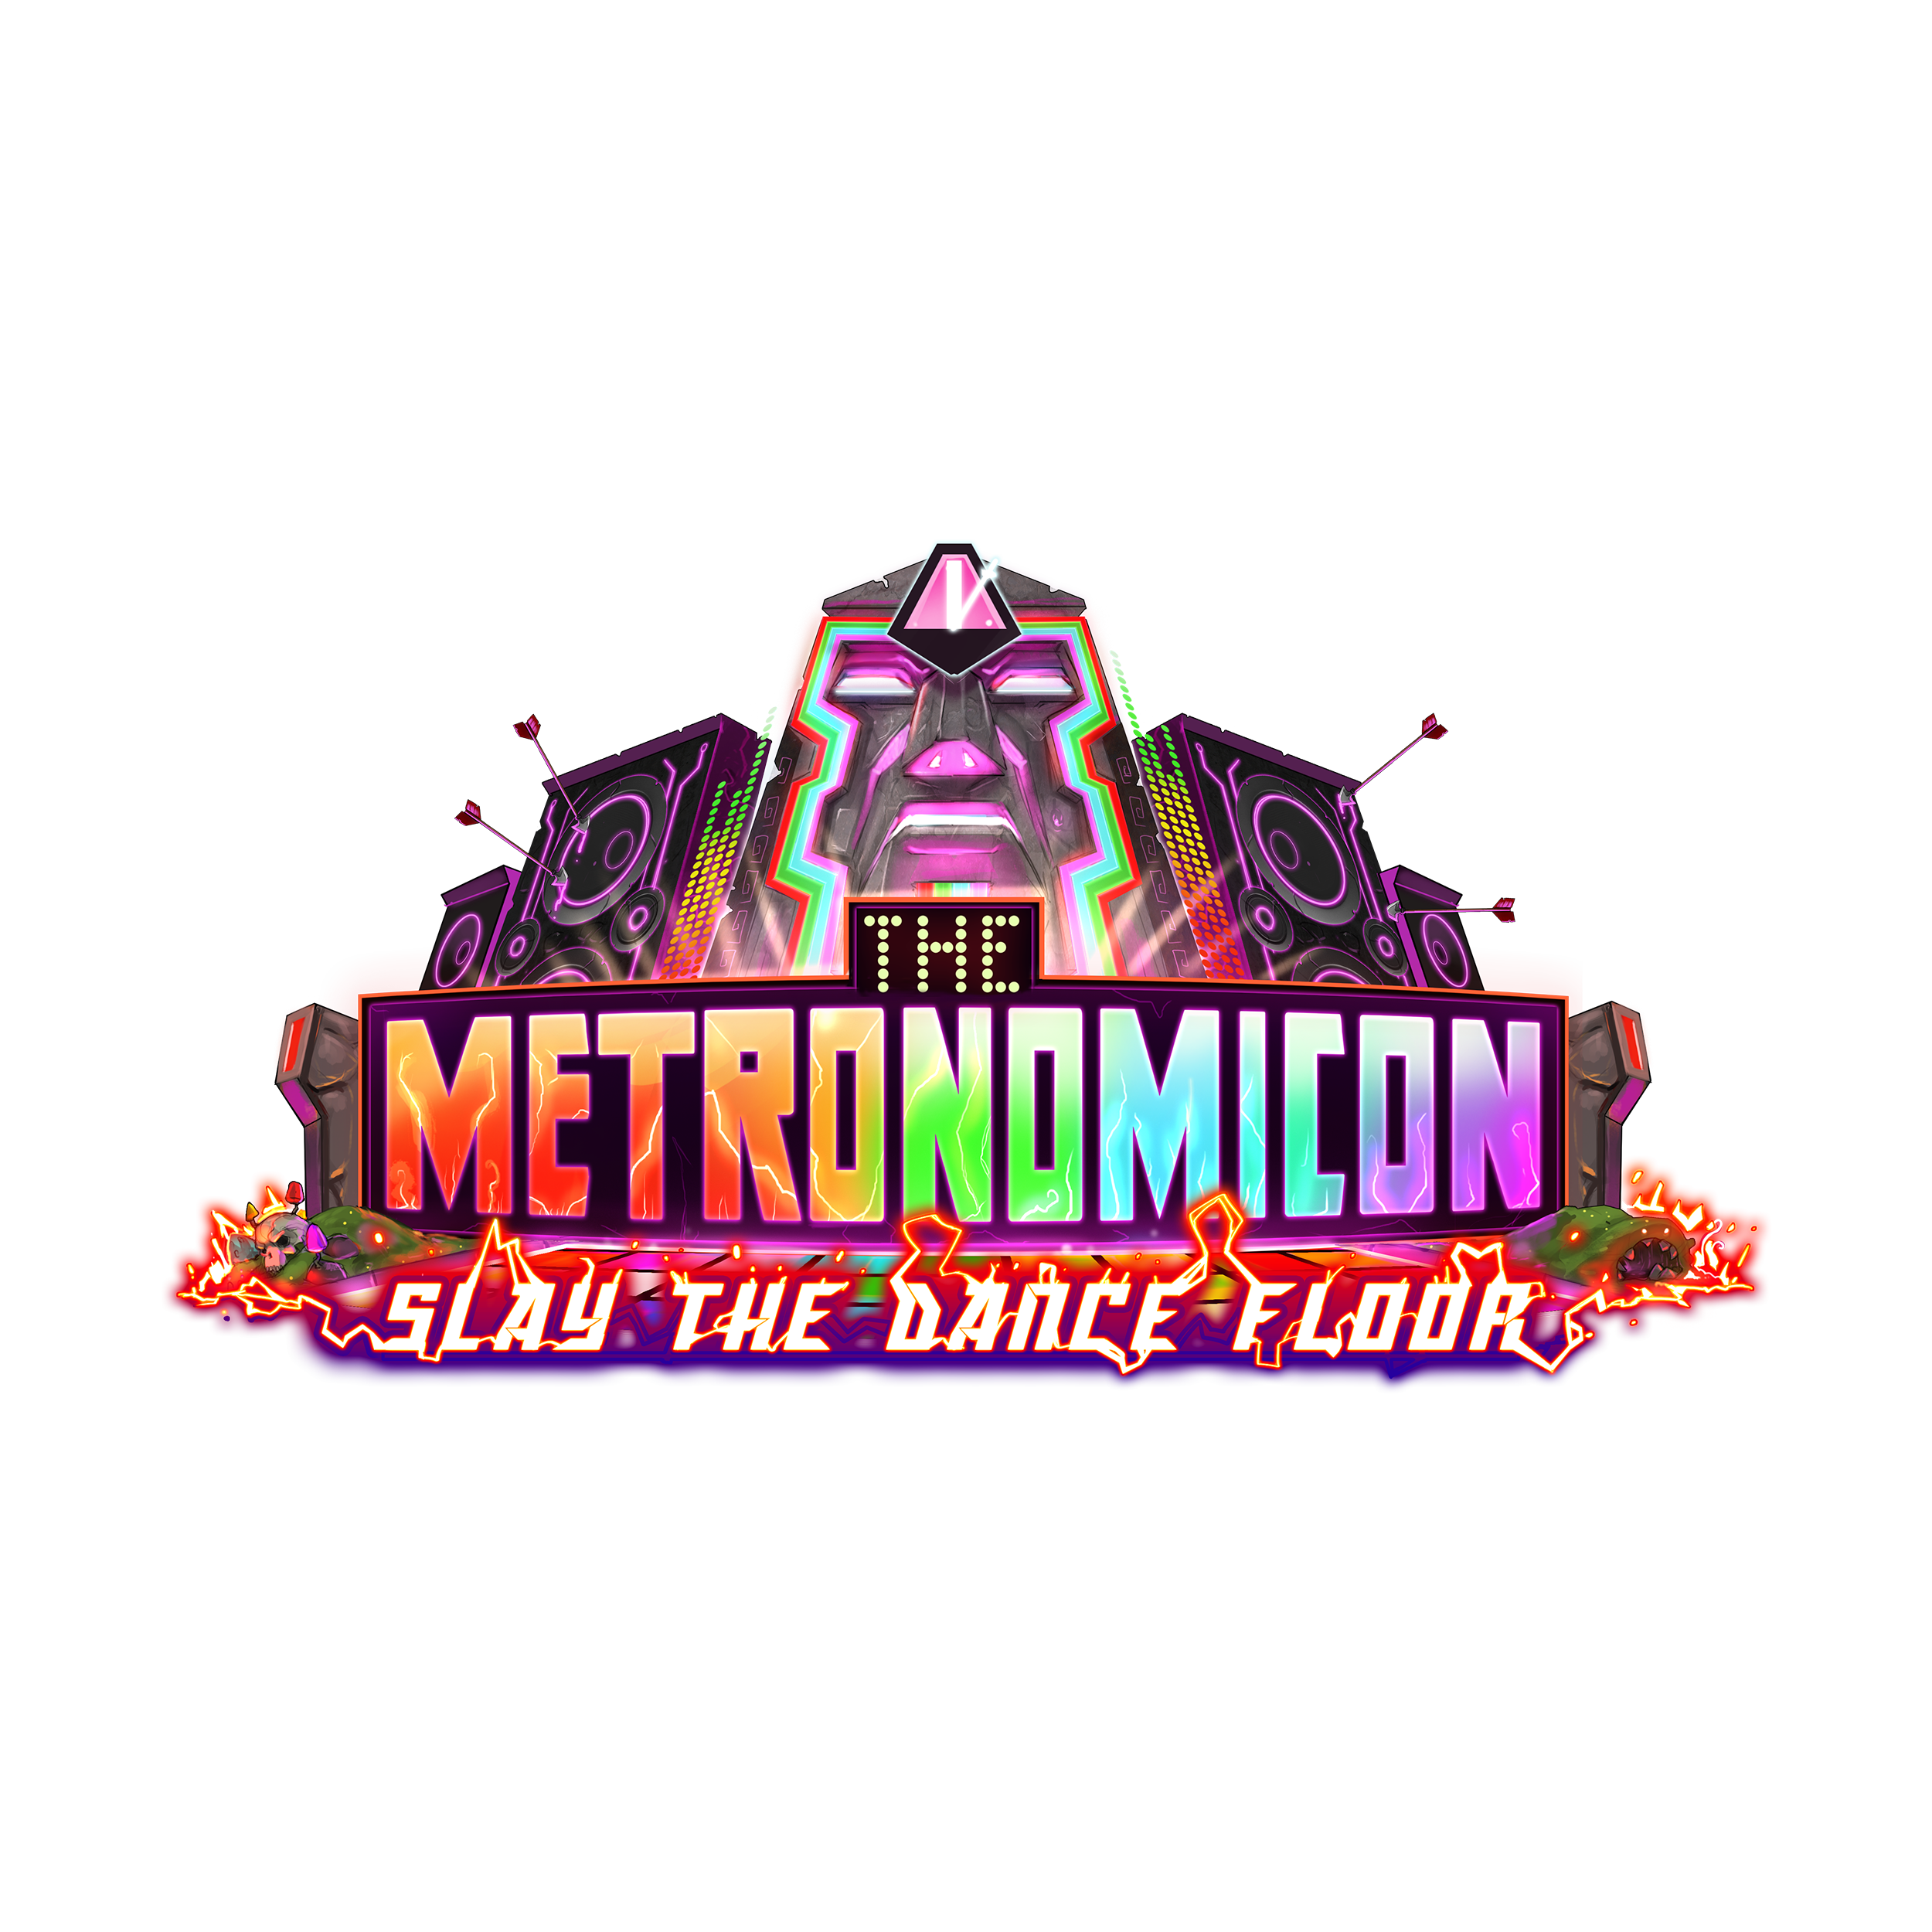 The Metronomicon - Slay The Dance Floor logo